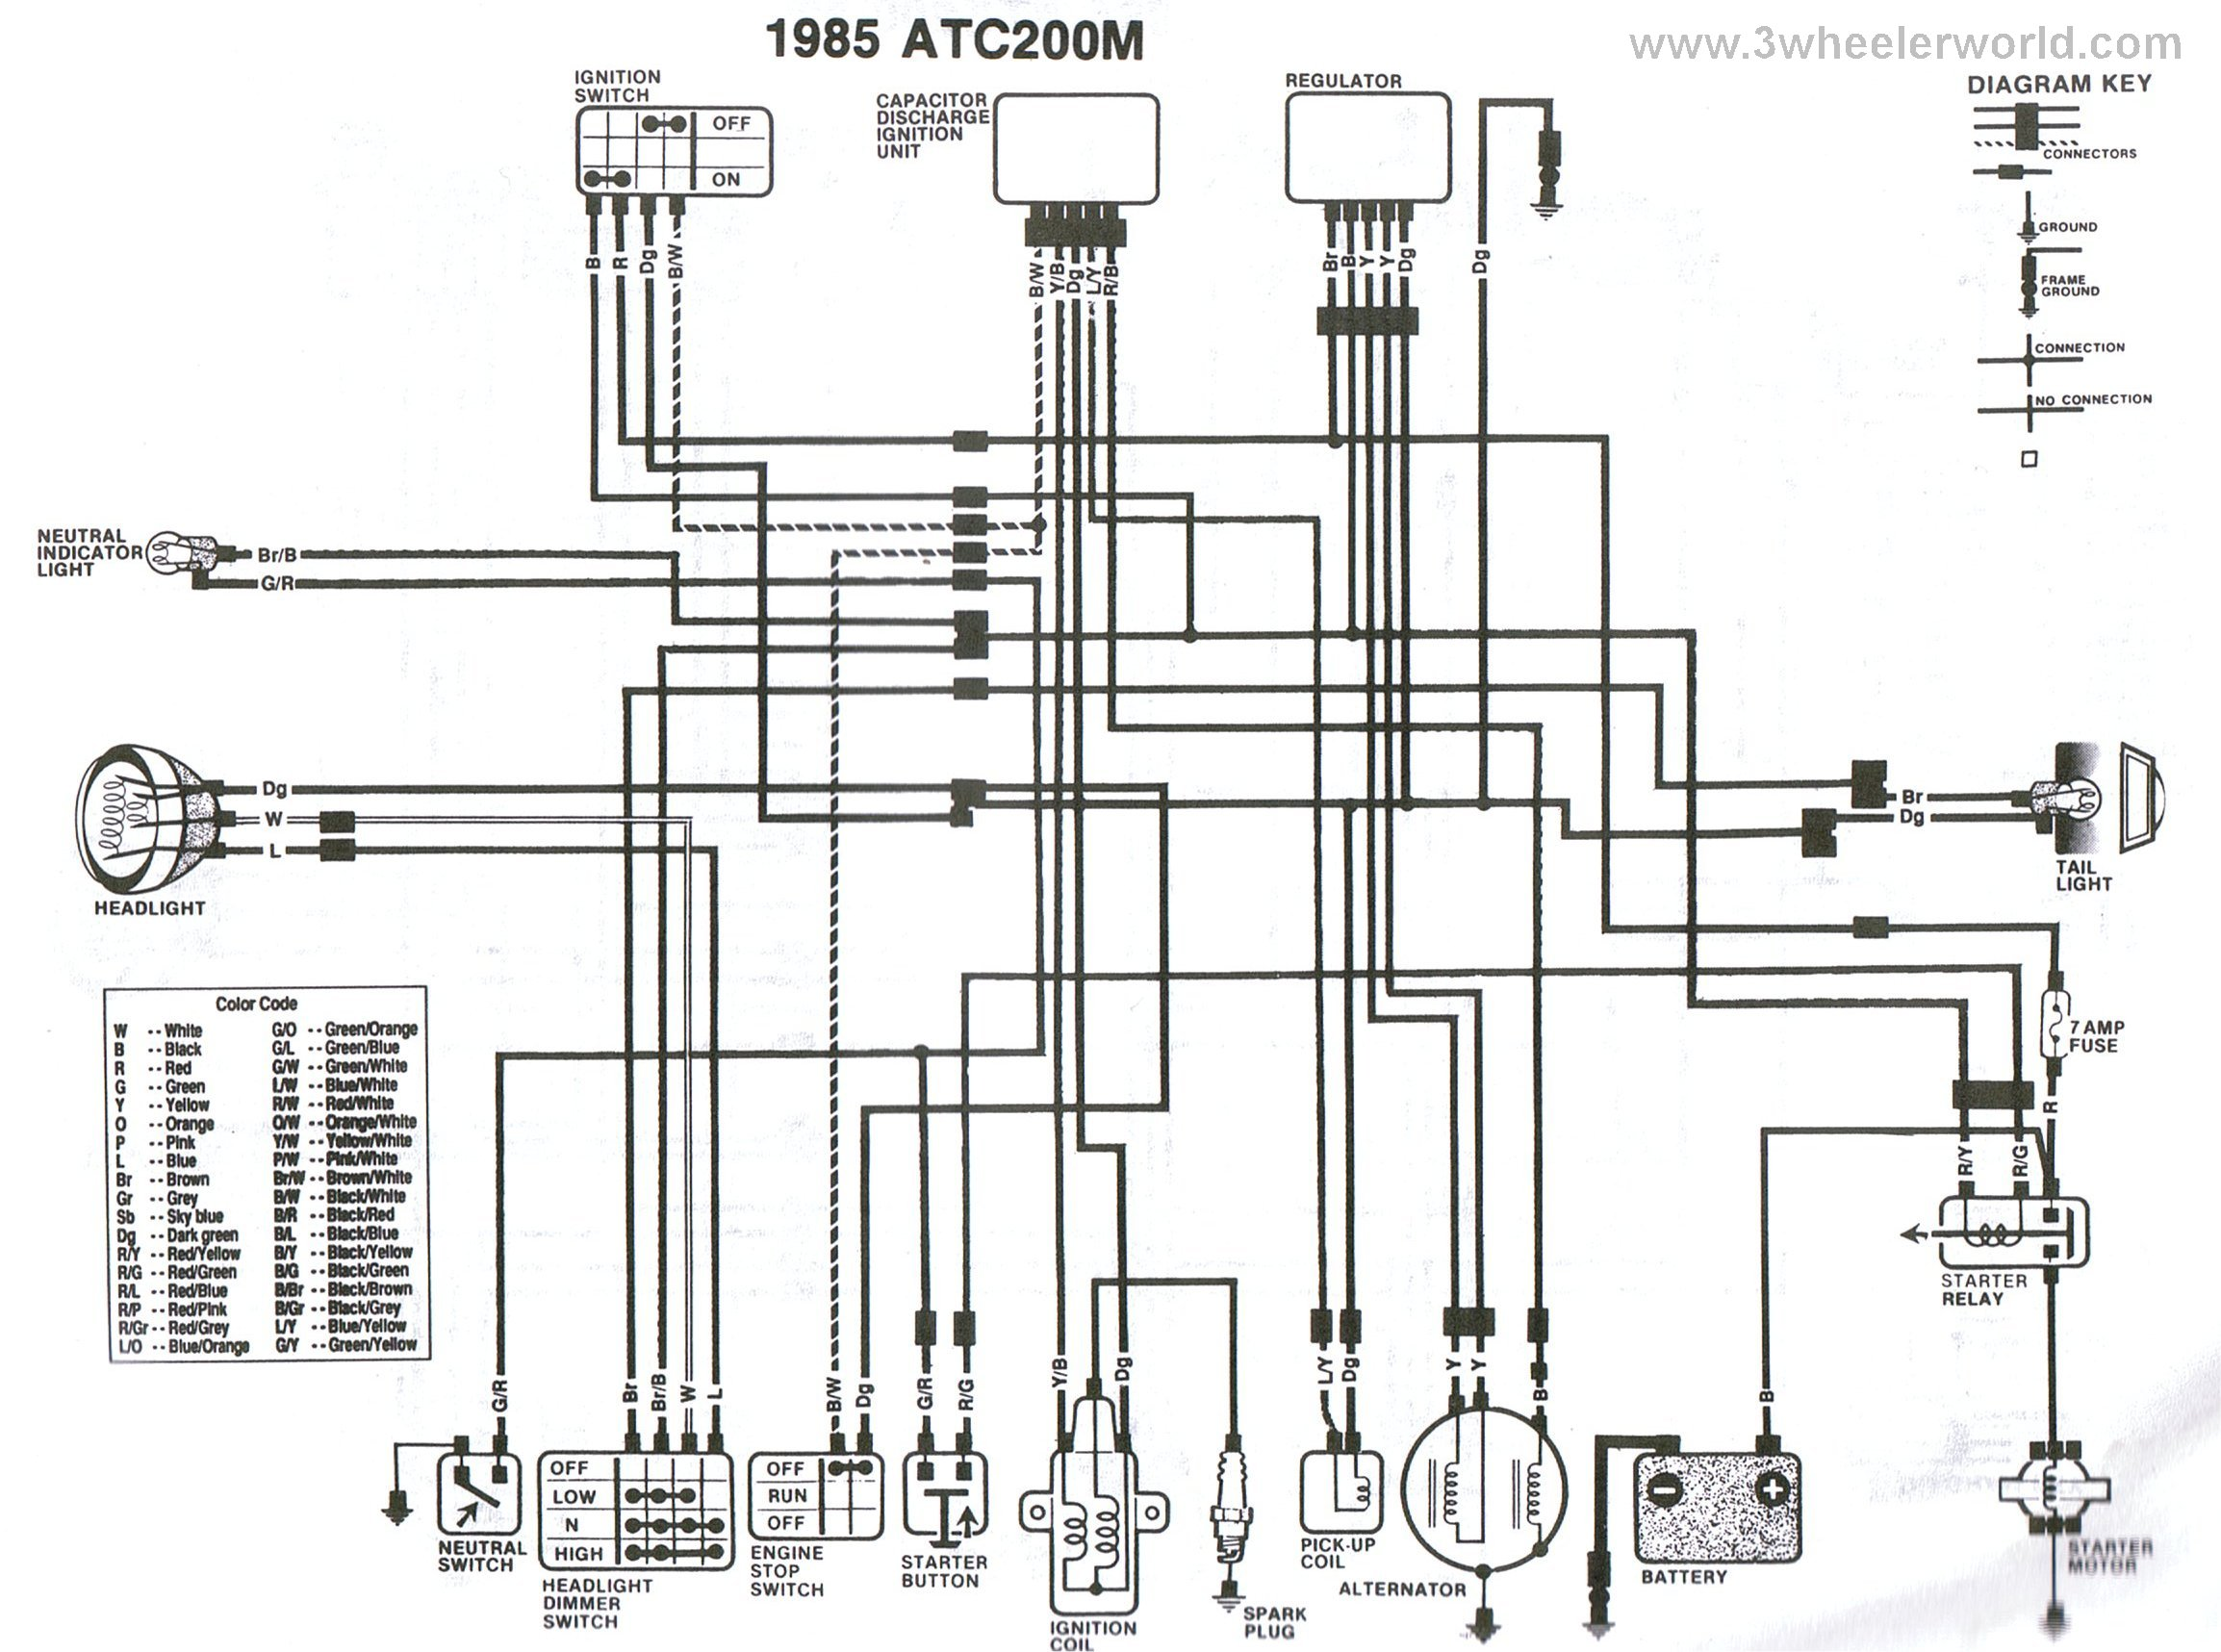 ATC200Mx85 honda big red wiring diagram wiring schematic for 1982 atc200e honda trx200 wiring diagram at edmiracle.co